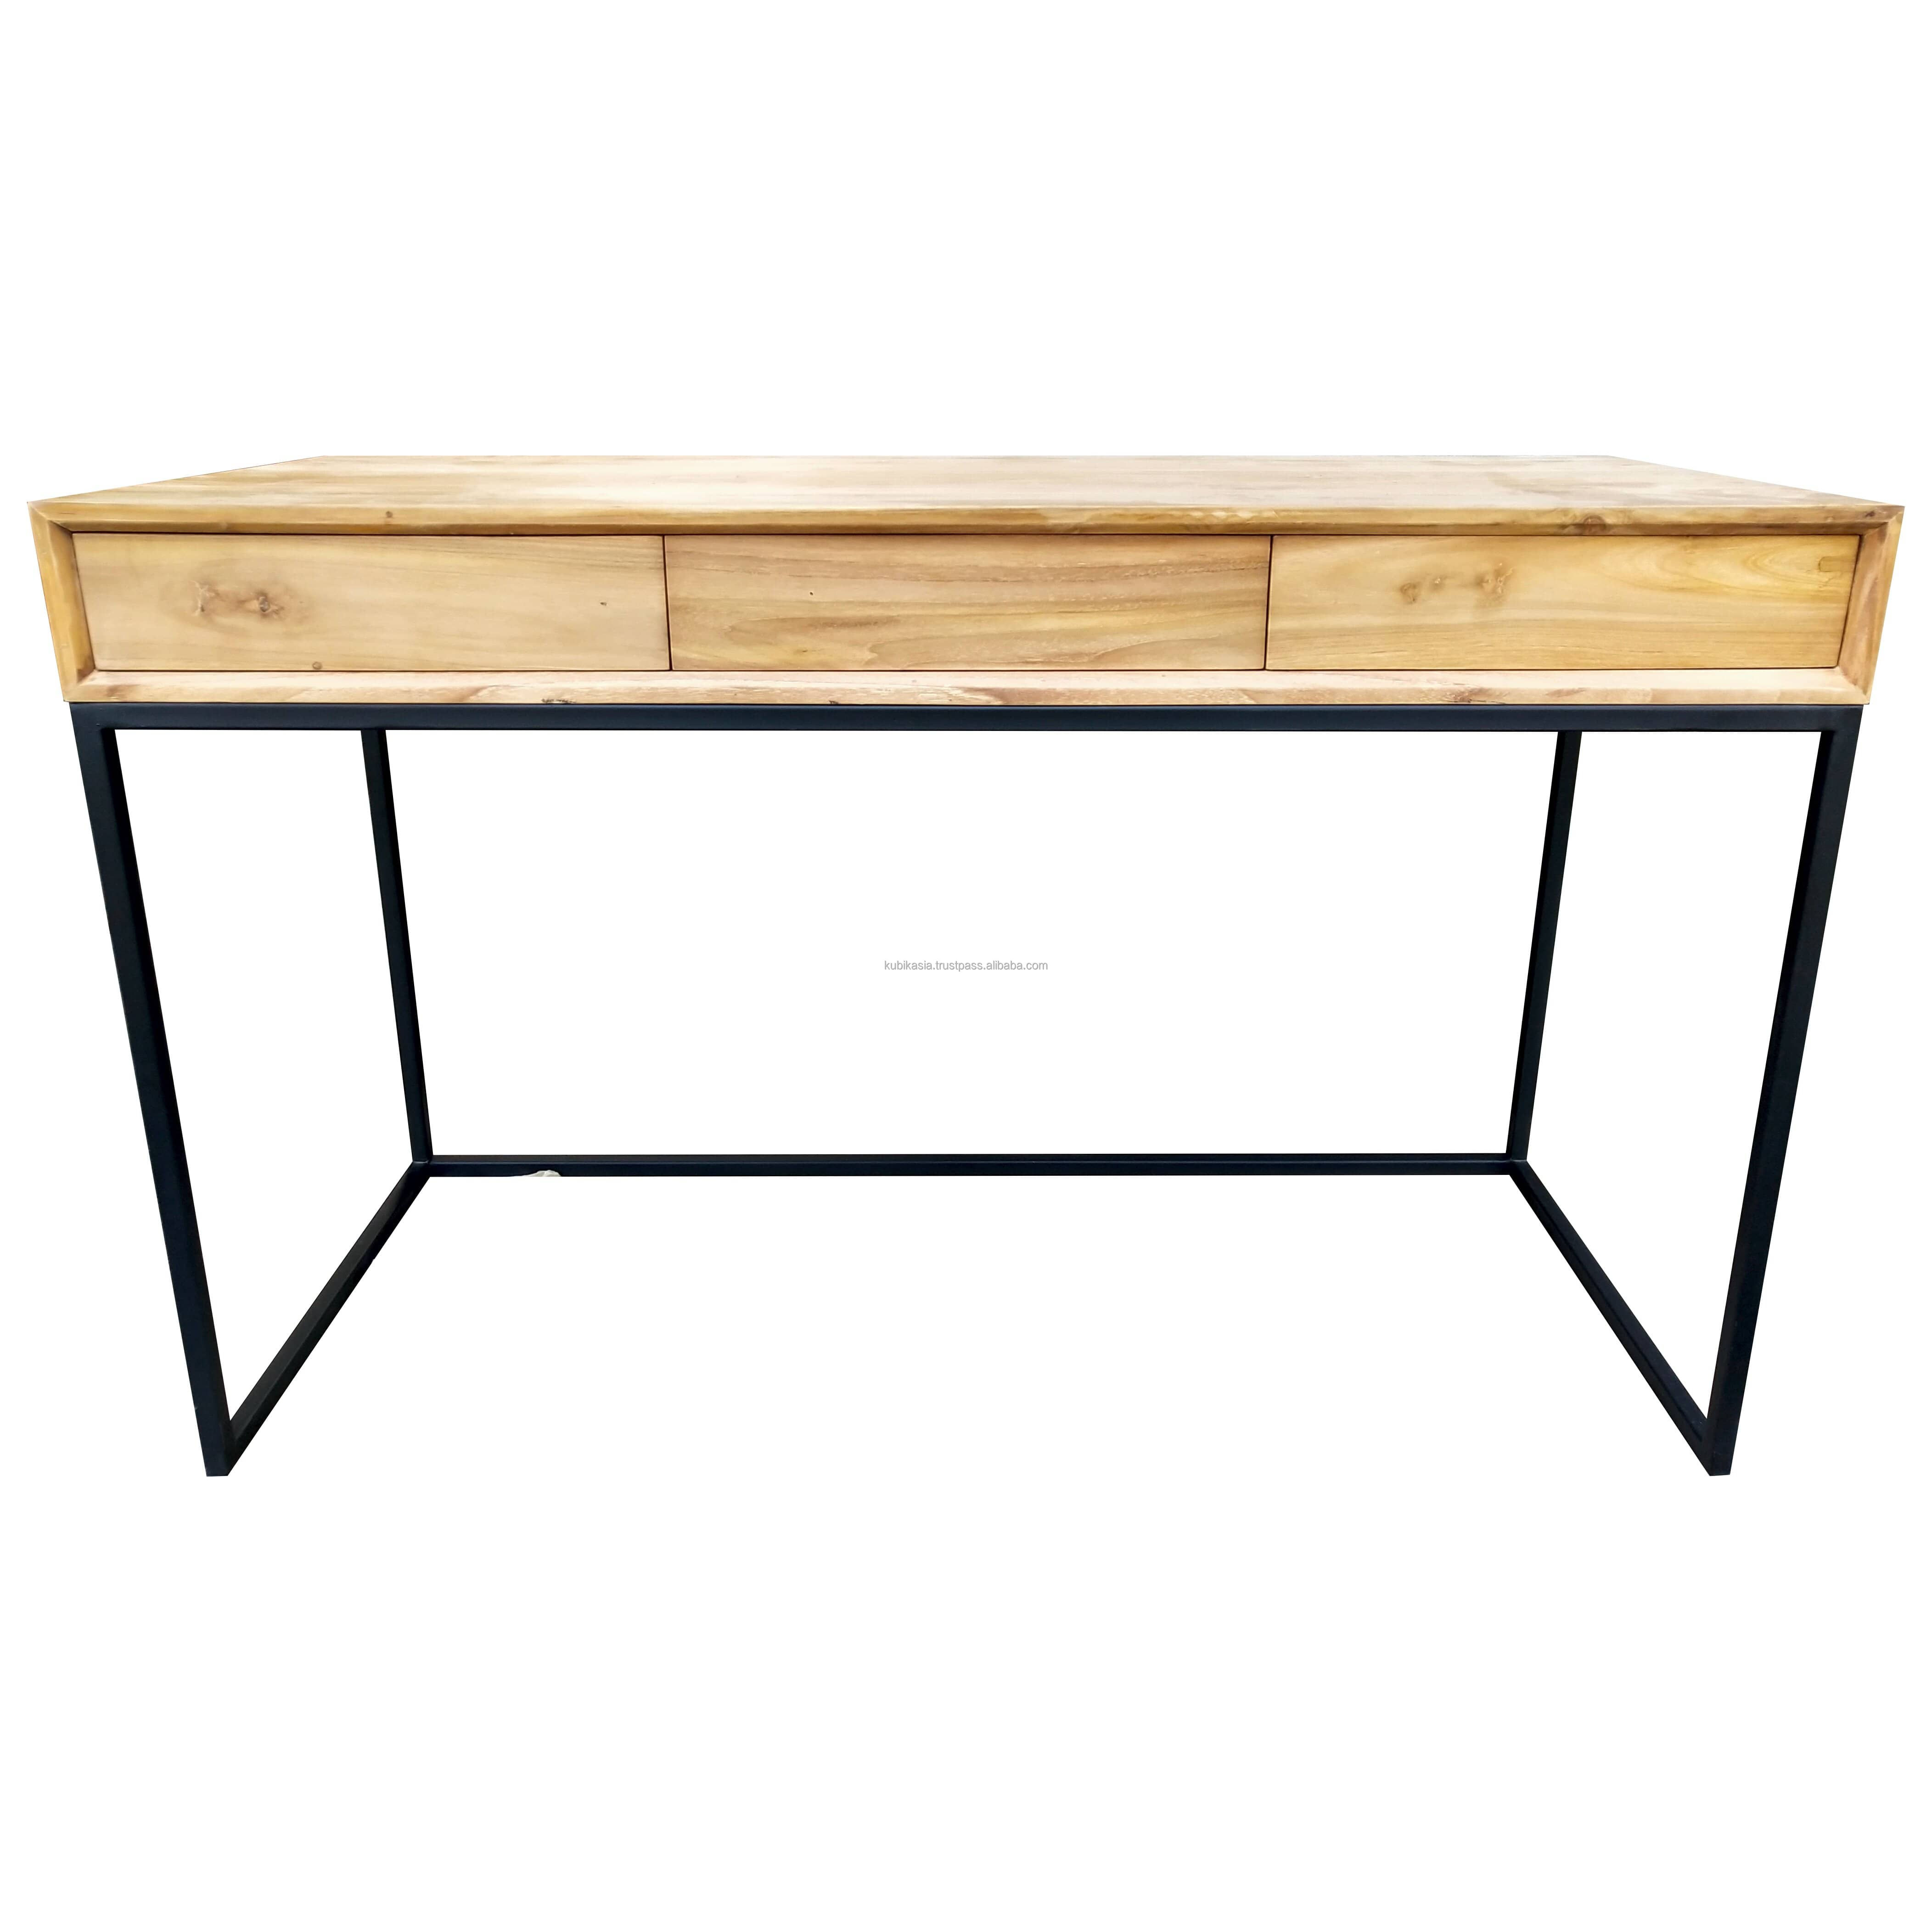 Premium OEM Wooden Office Desk OEM (2) Eco Friendly Made From Best Solid Teak Wood And Iron For Office Indoor Furniture